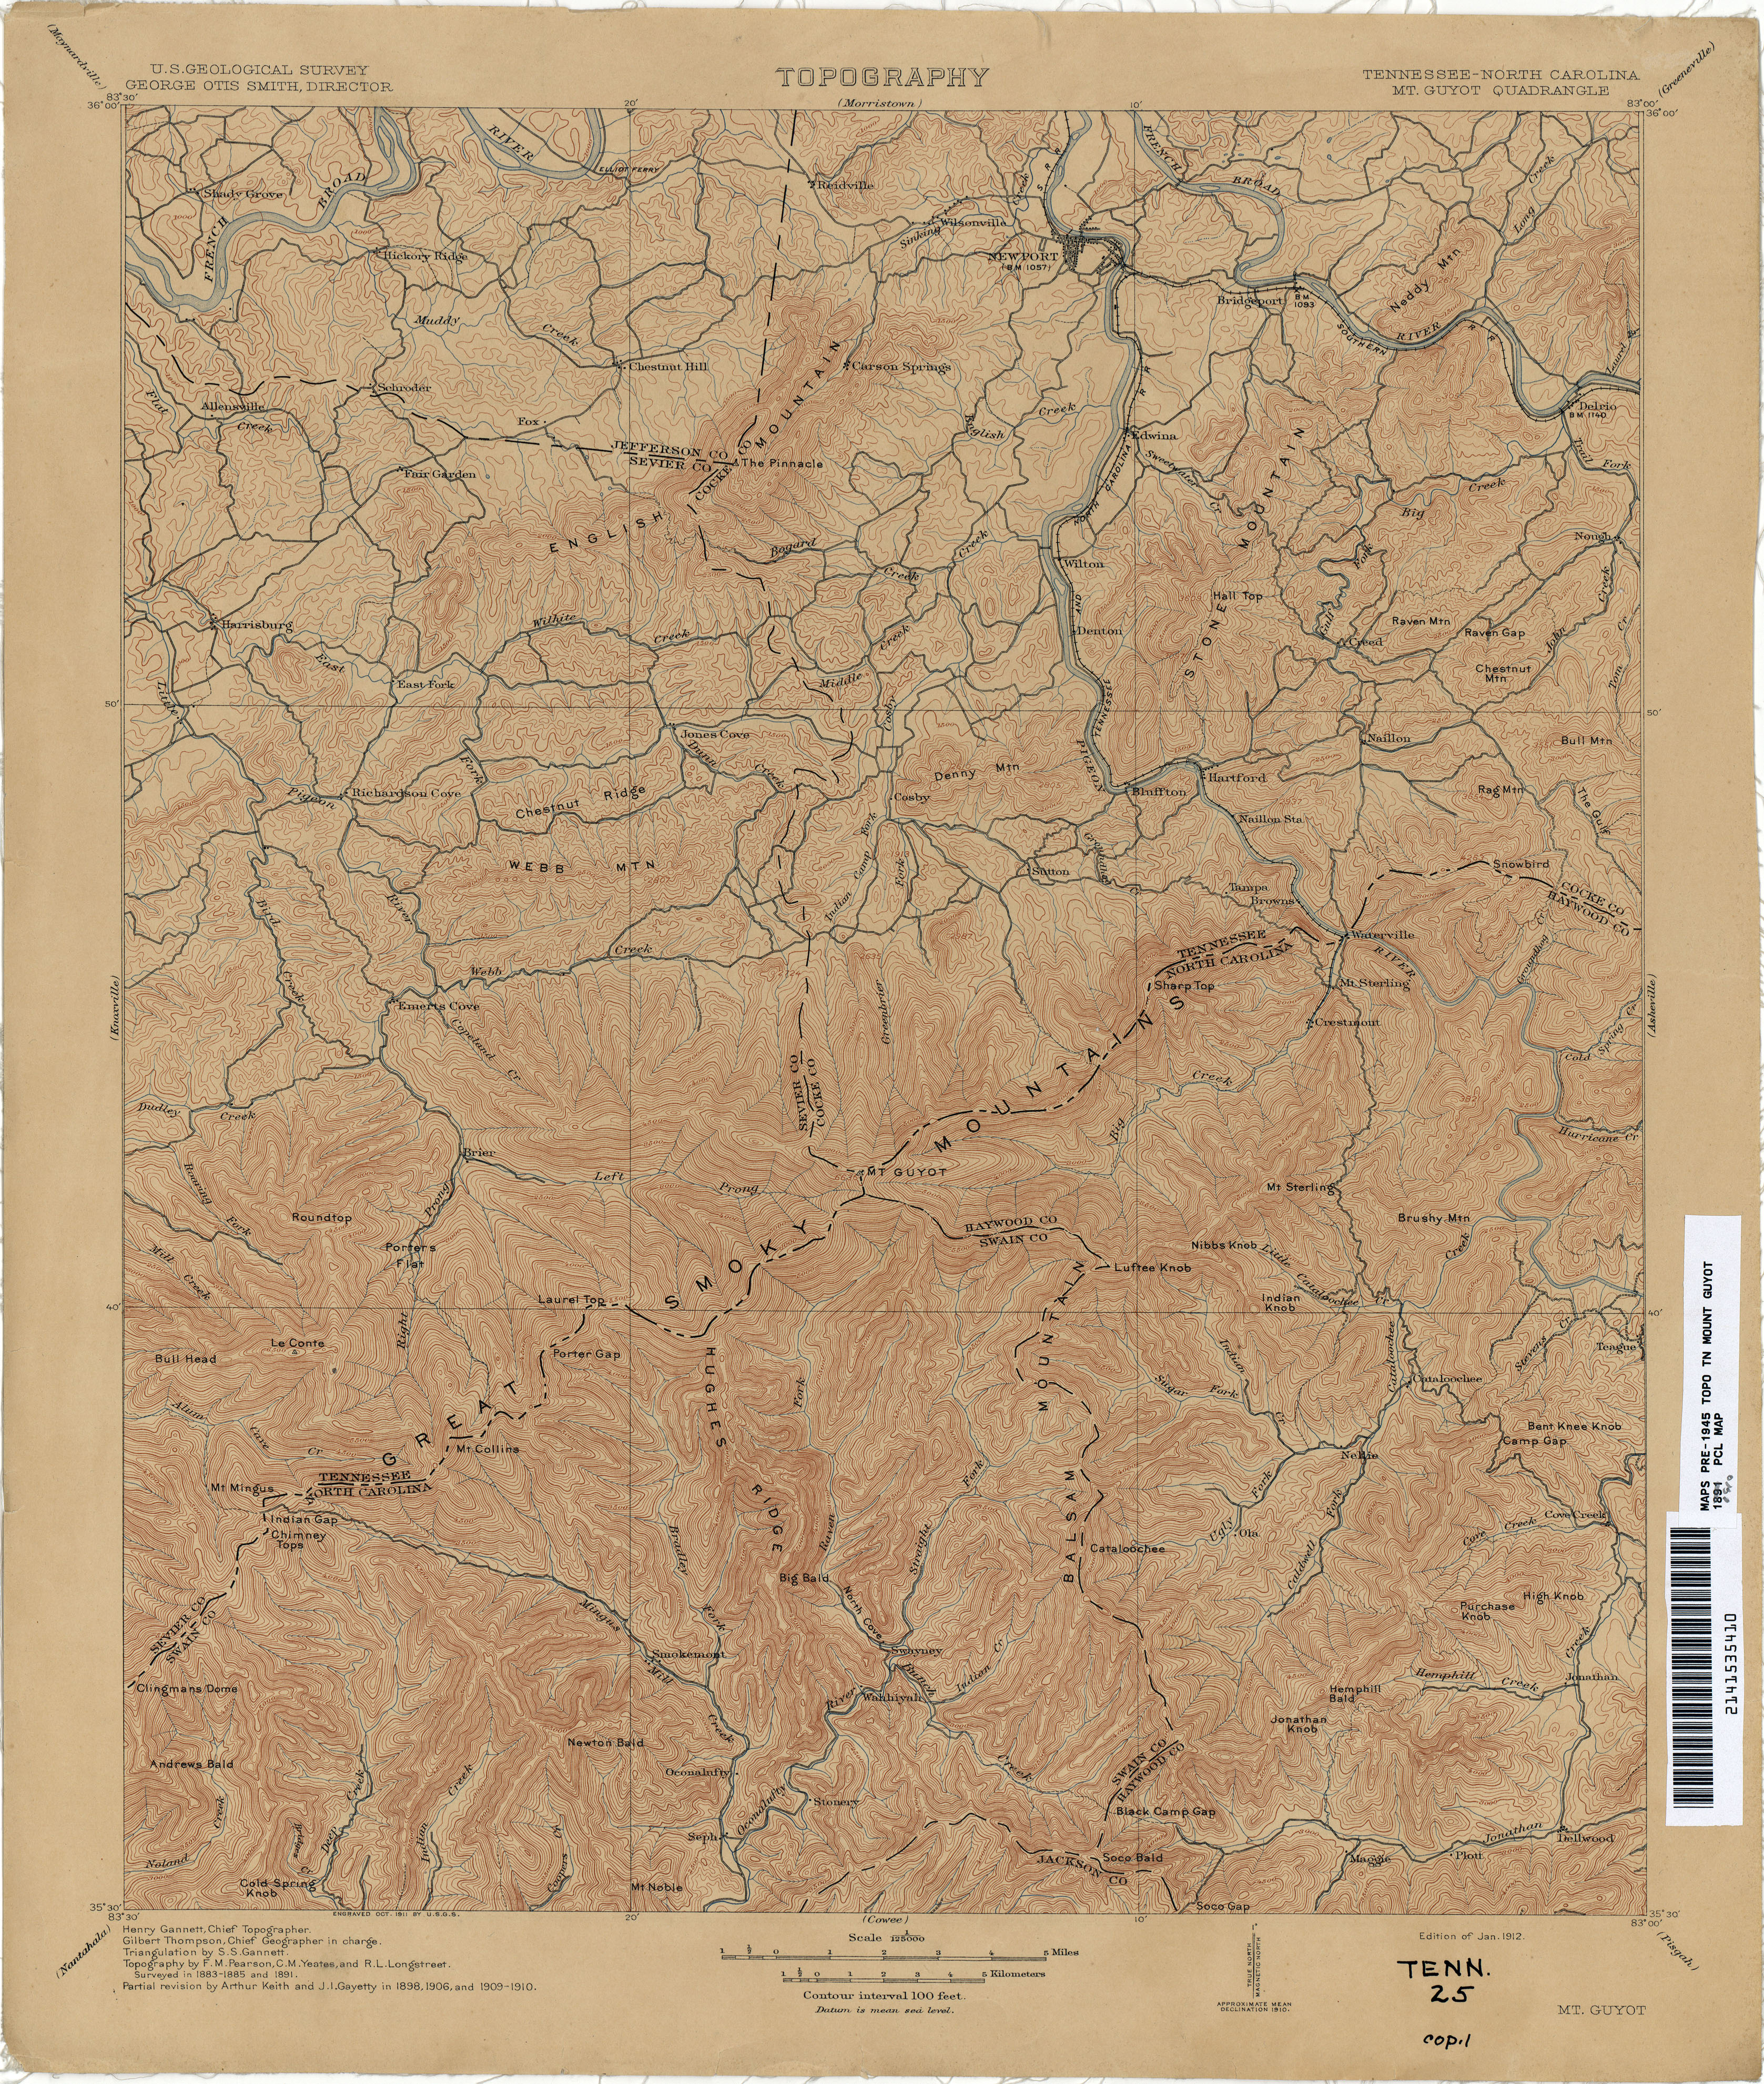 Tennesse Historical Topographic Maps - Perry-Castañeda Map ...